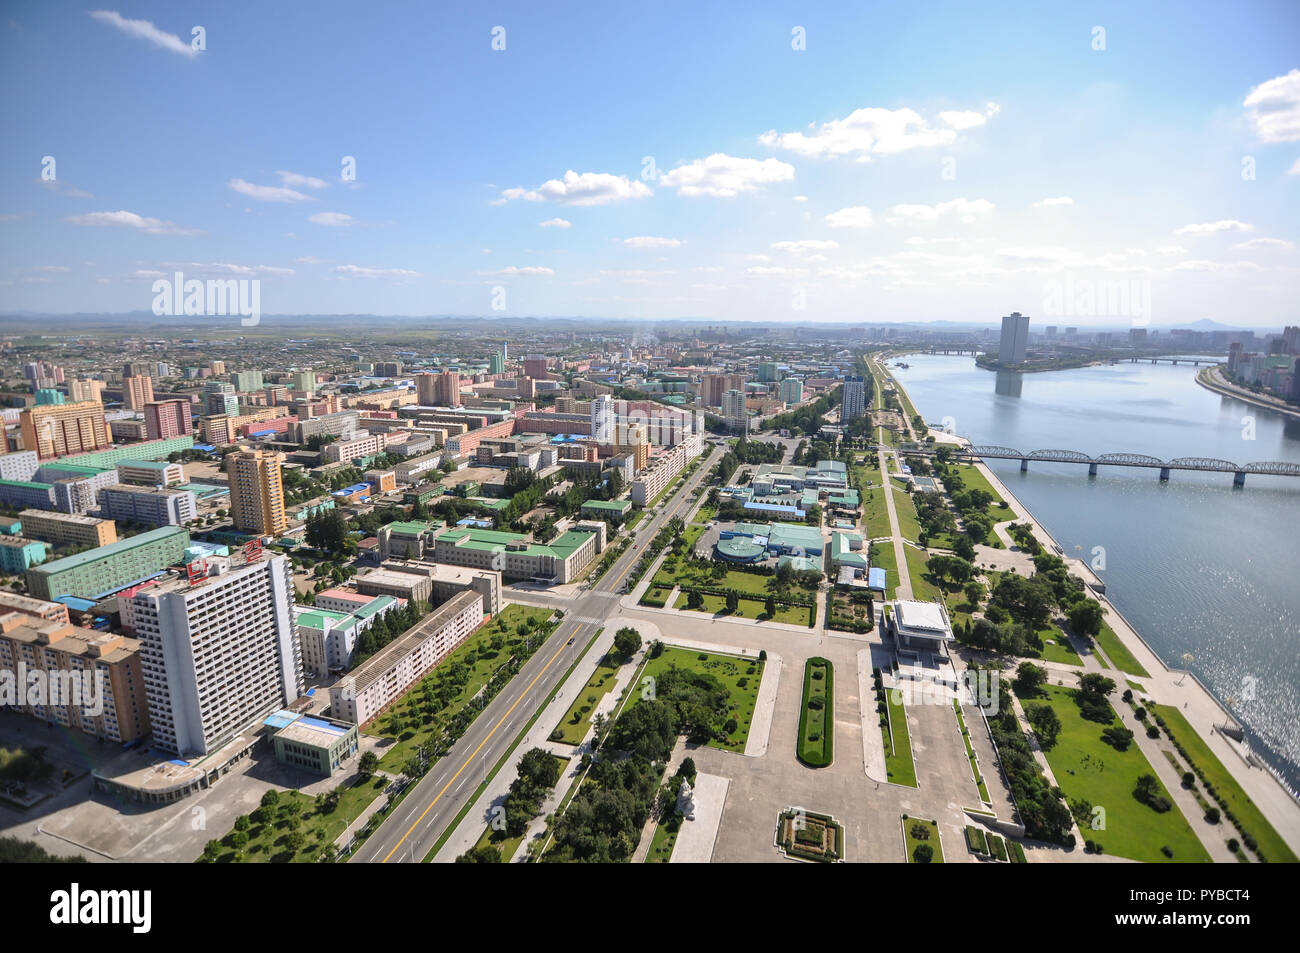 New cityscapes emerge in Pyongyang as money is drawn from the atomic test sites an nuclear labs to the people and the city itself - Stock Image